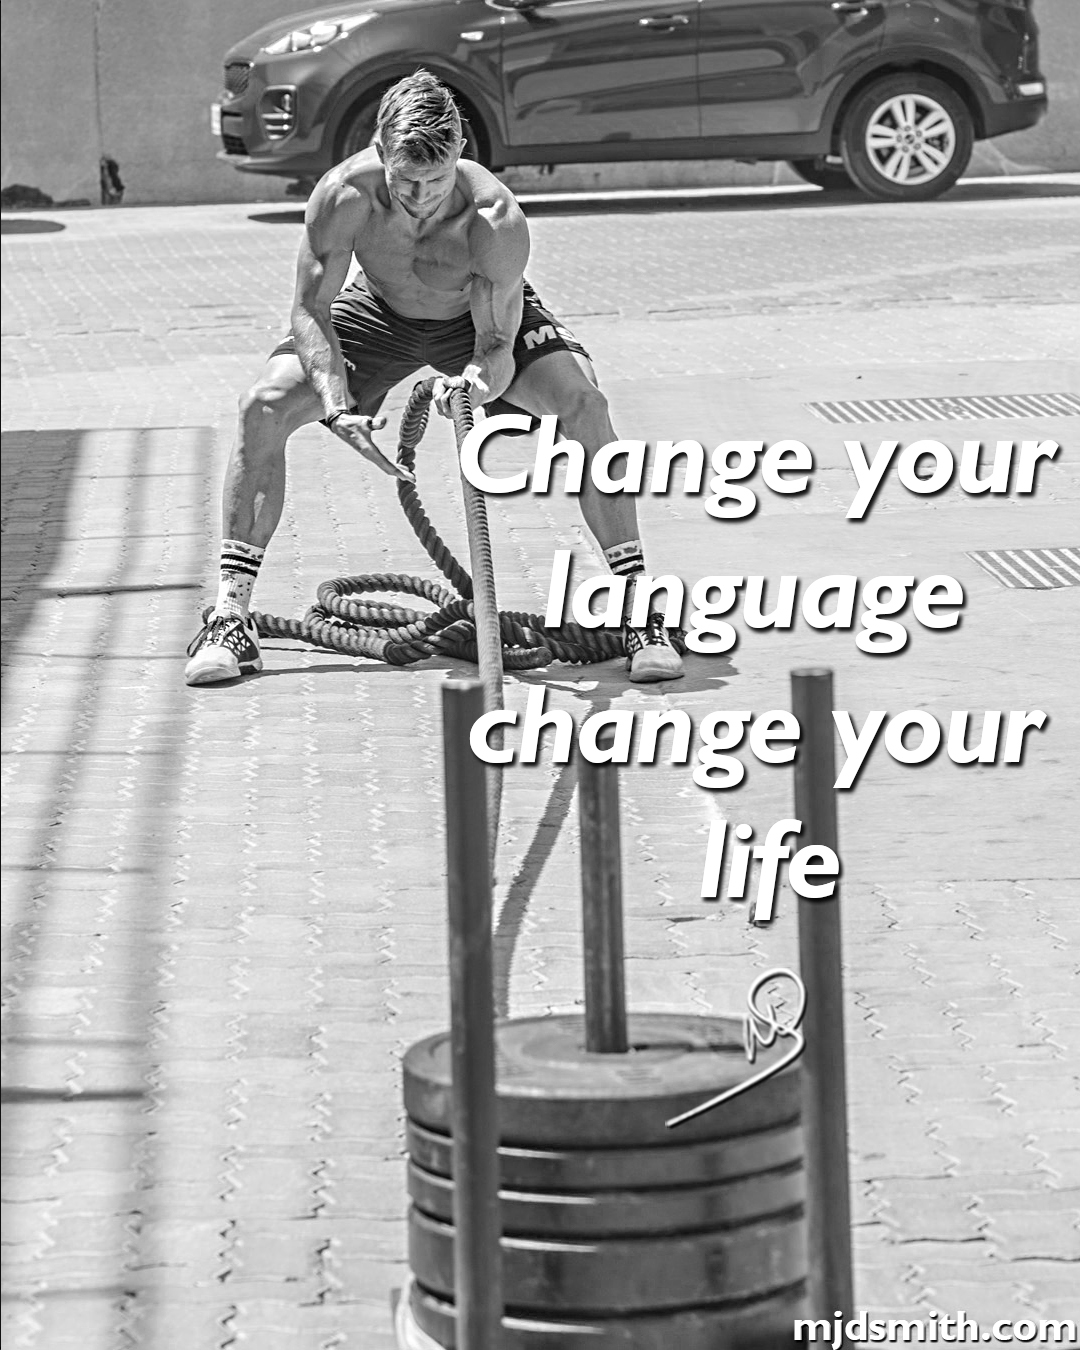 Change your language, change your life.